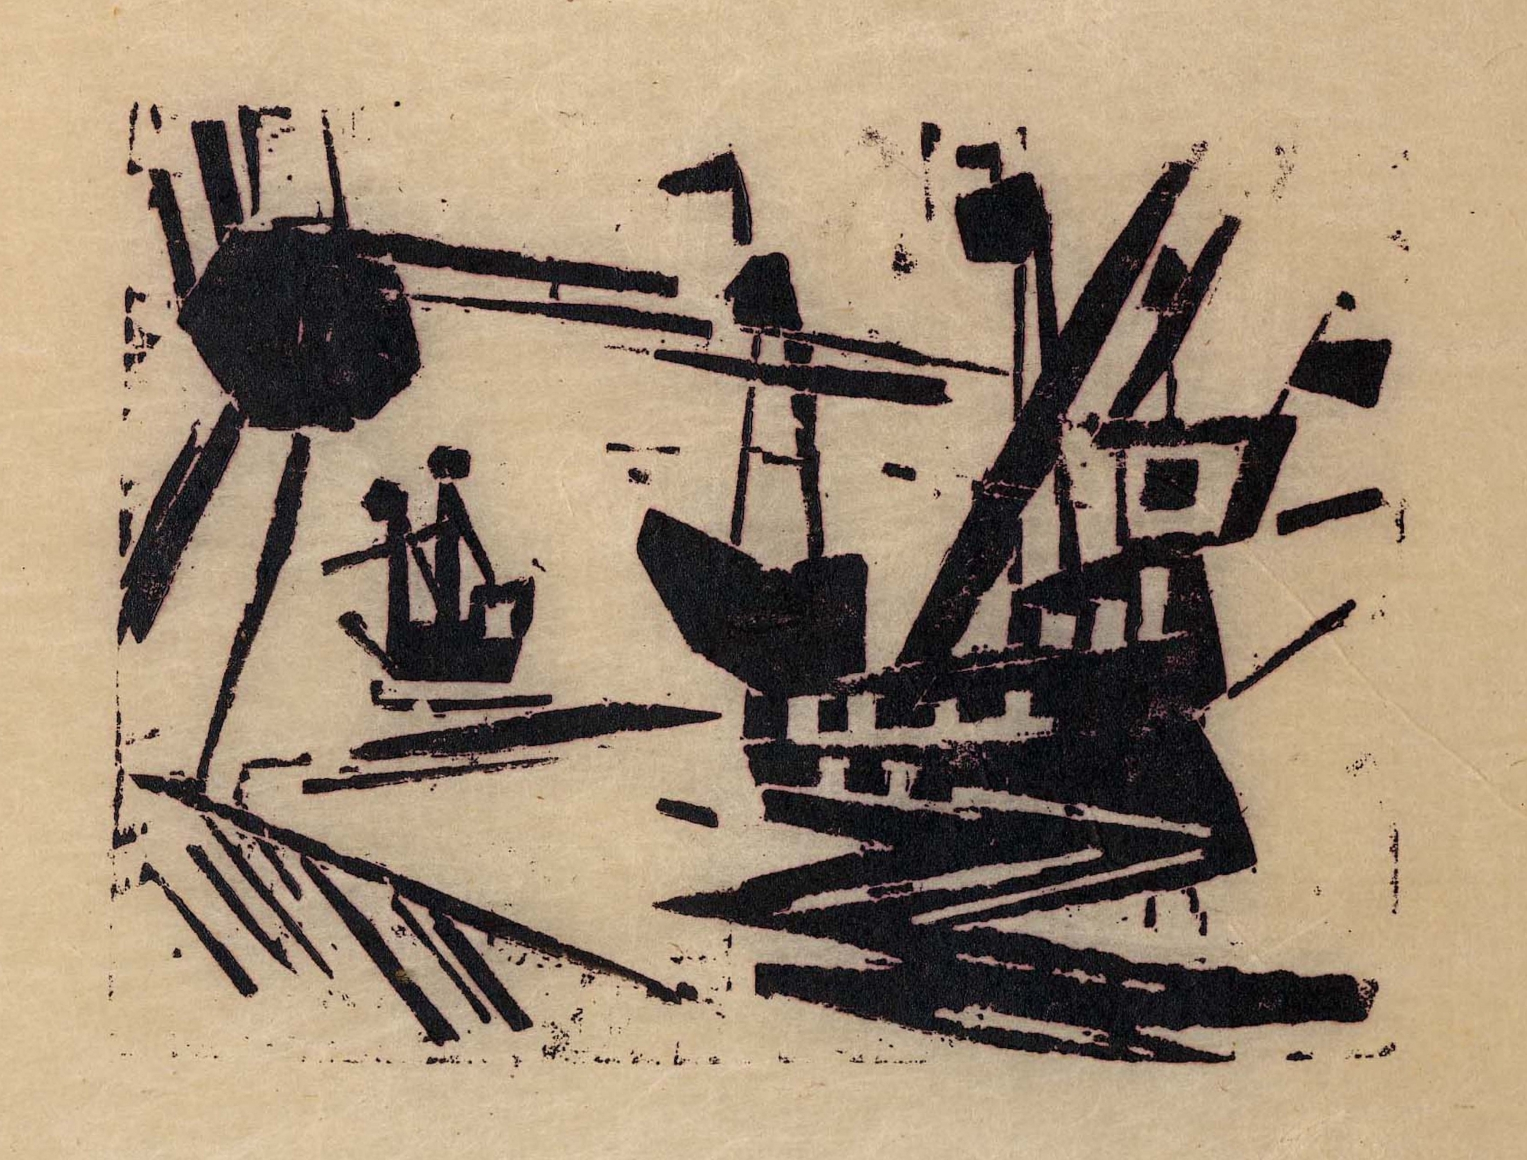 Ships and Sun woodcut by Lyonel Feininger